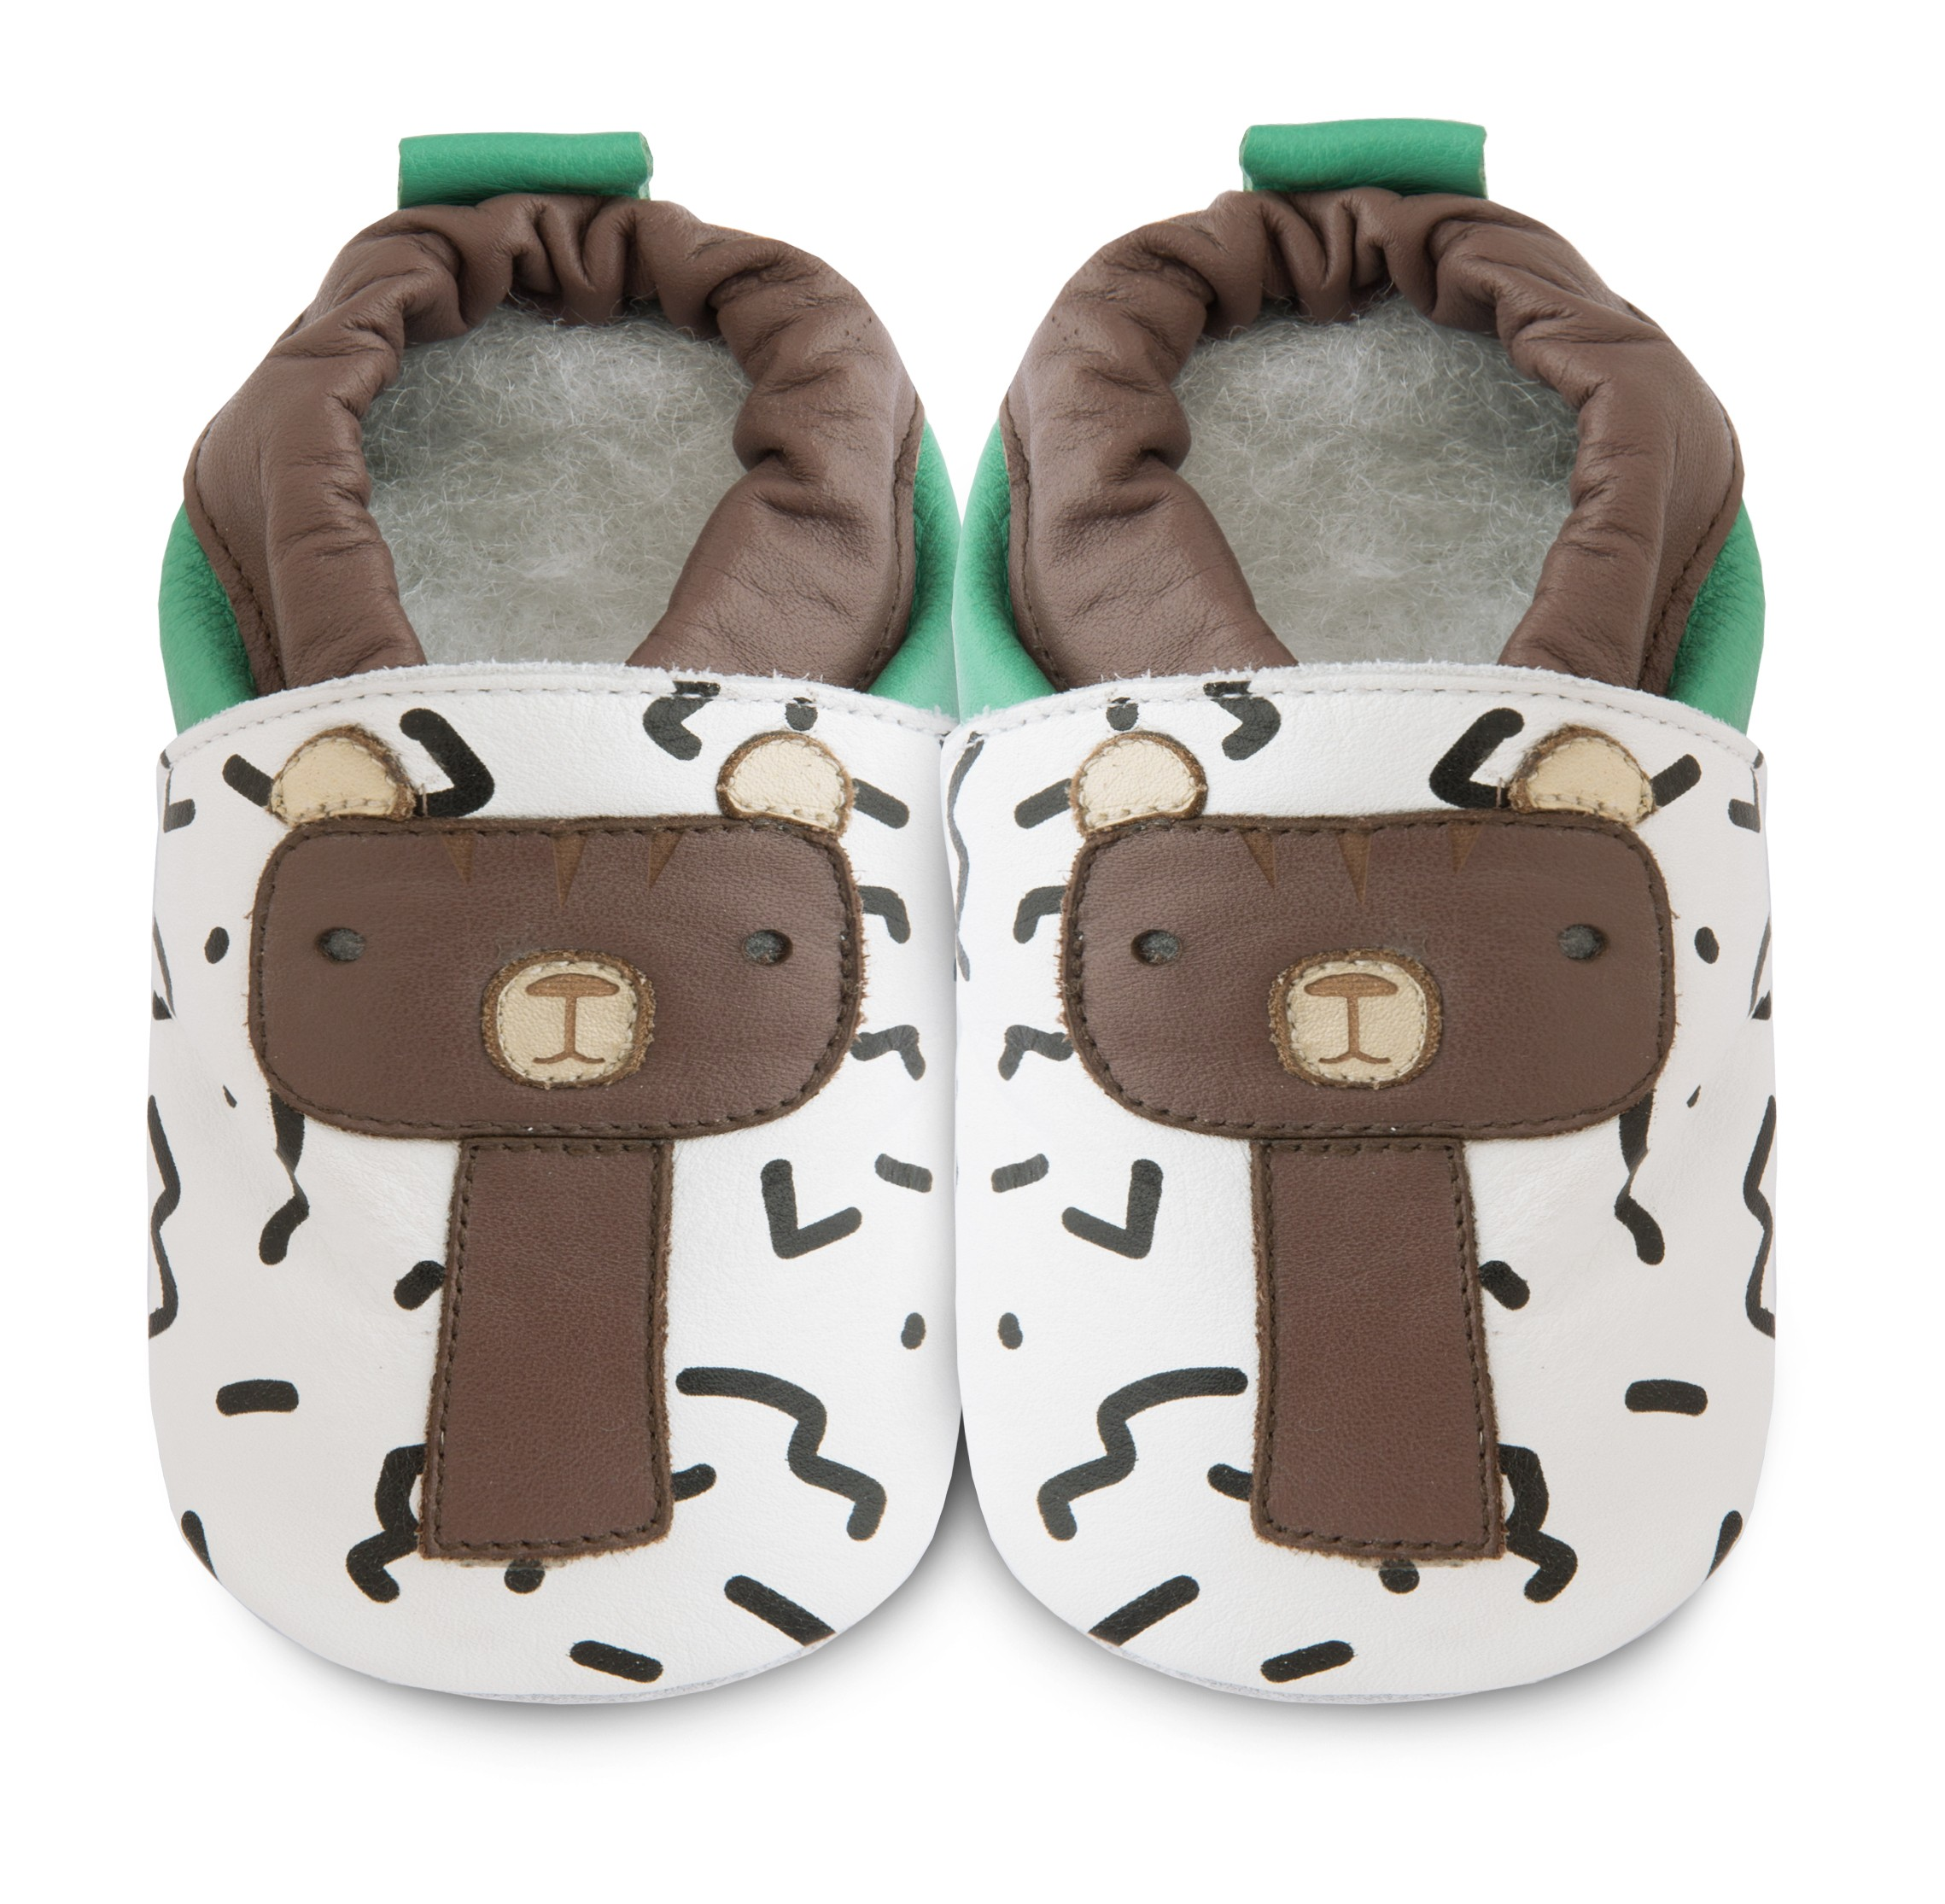 b523a7f47ac05 Chaussons souples cuir Barry the bear